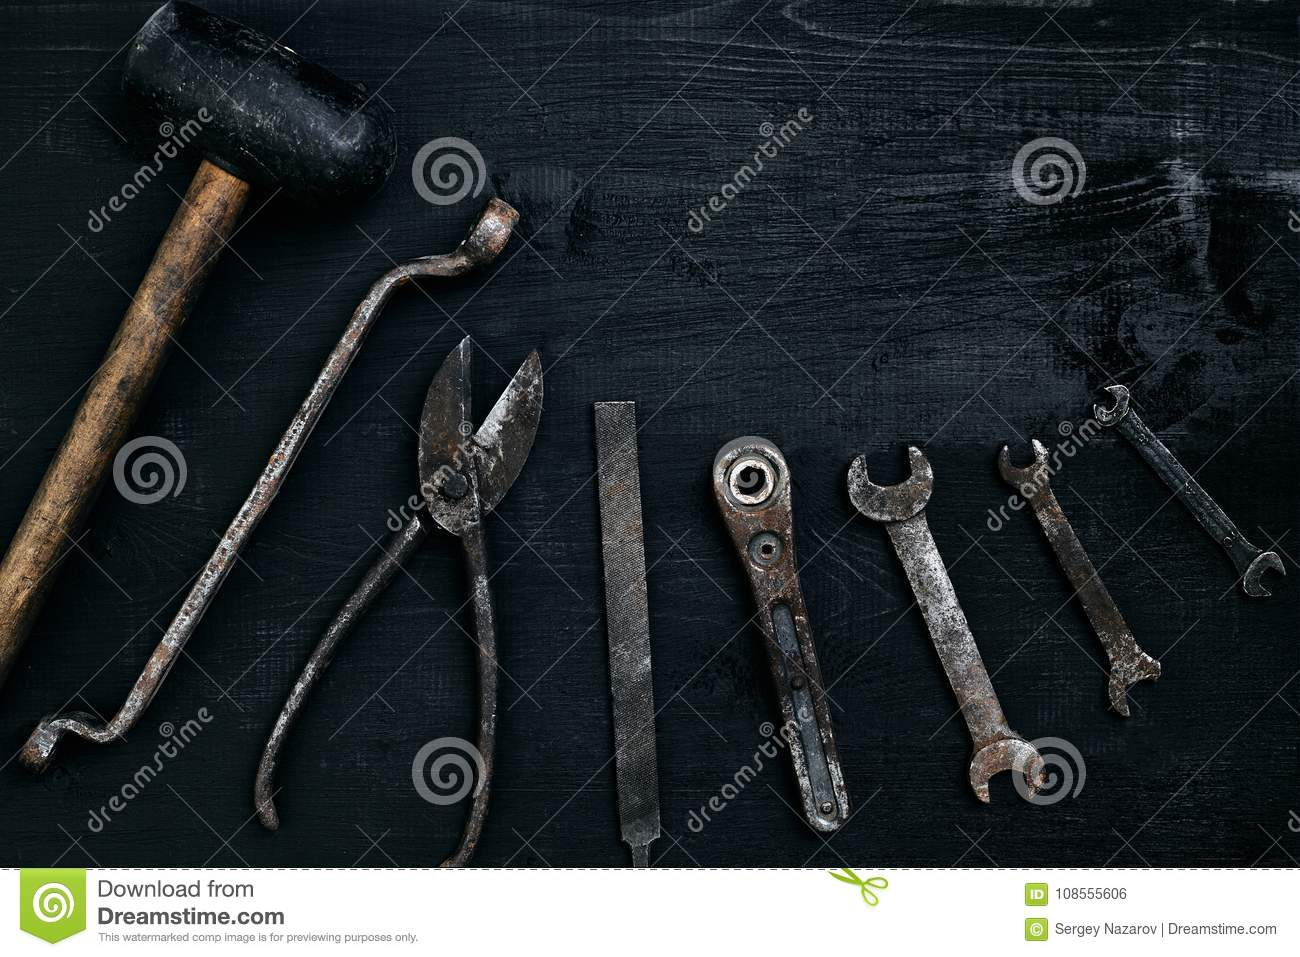 Old, rusty tools lying on a black wooden table. Hammer, chisel, metal scissors, wrench.